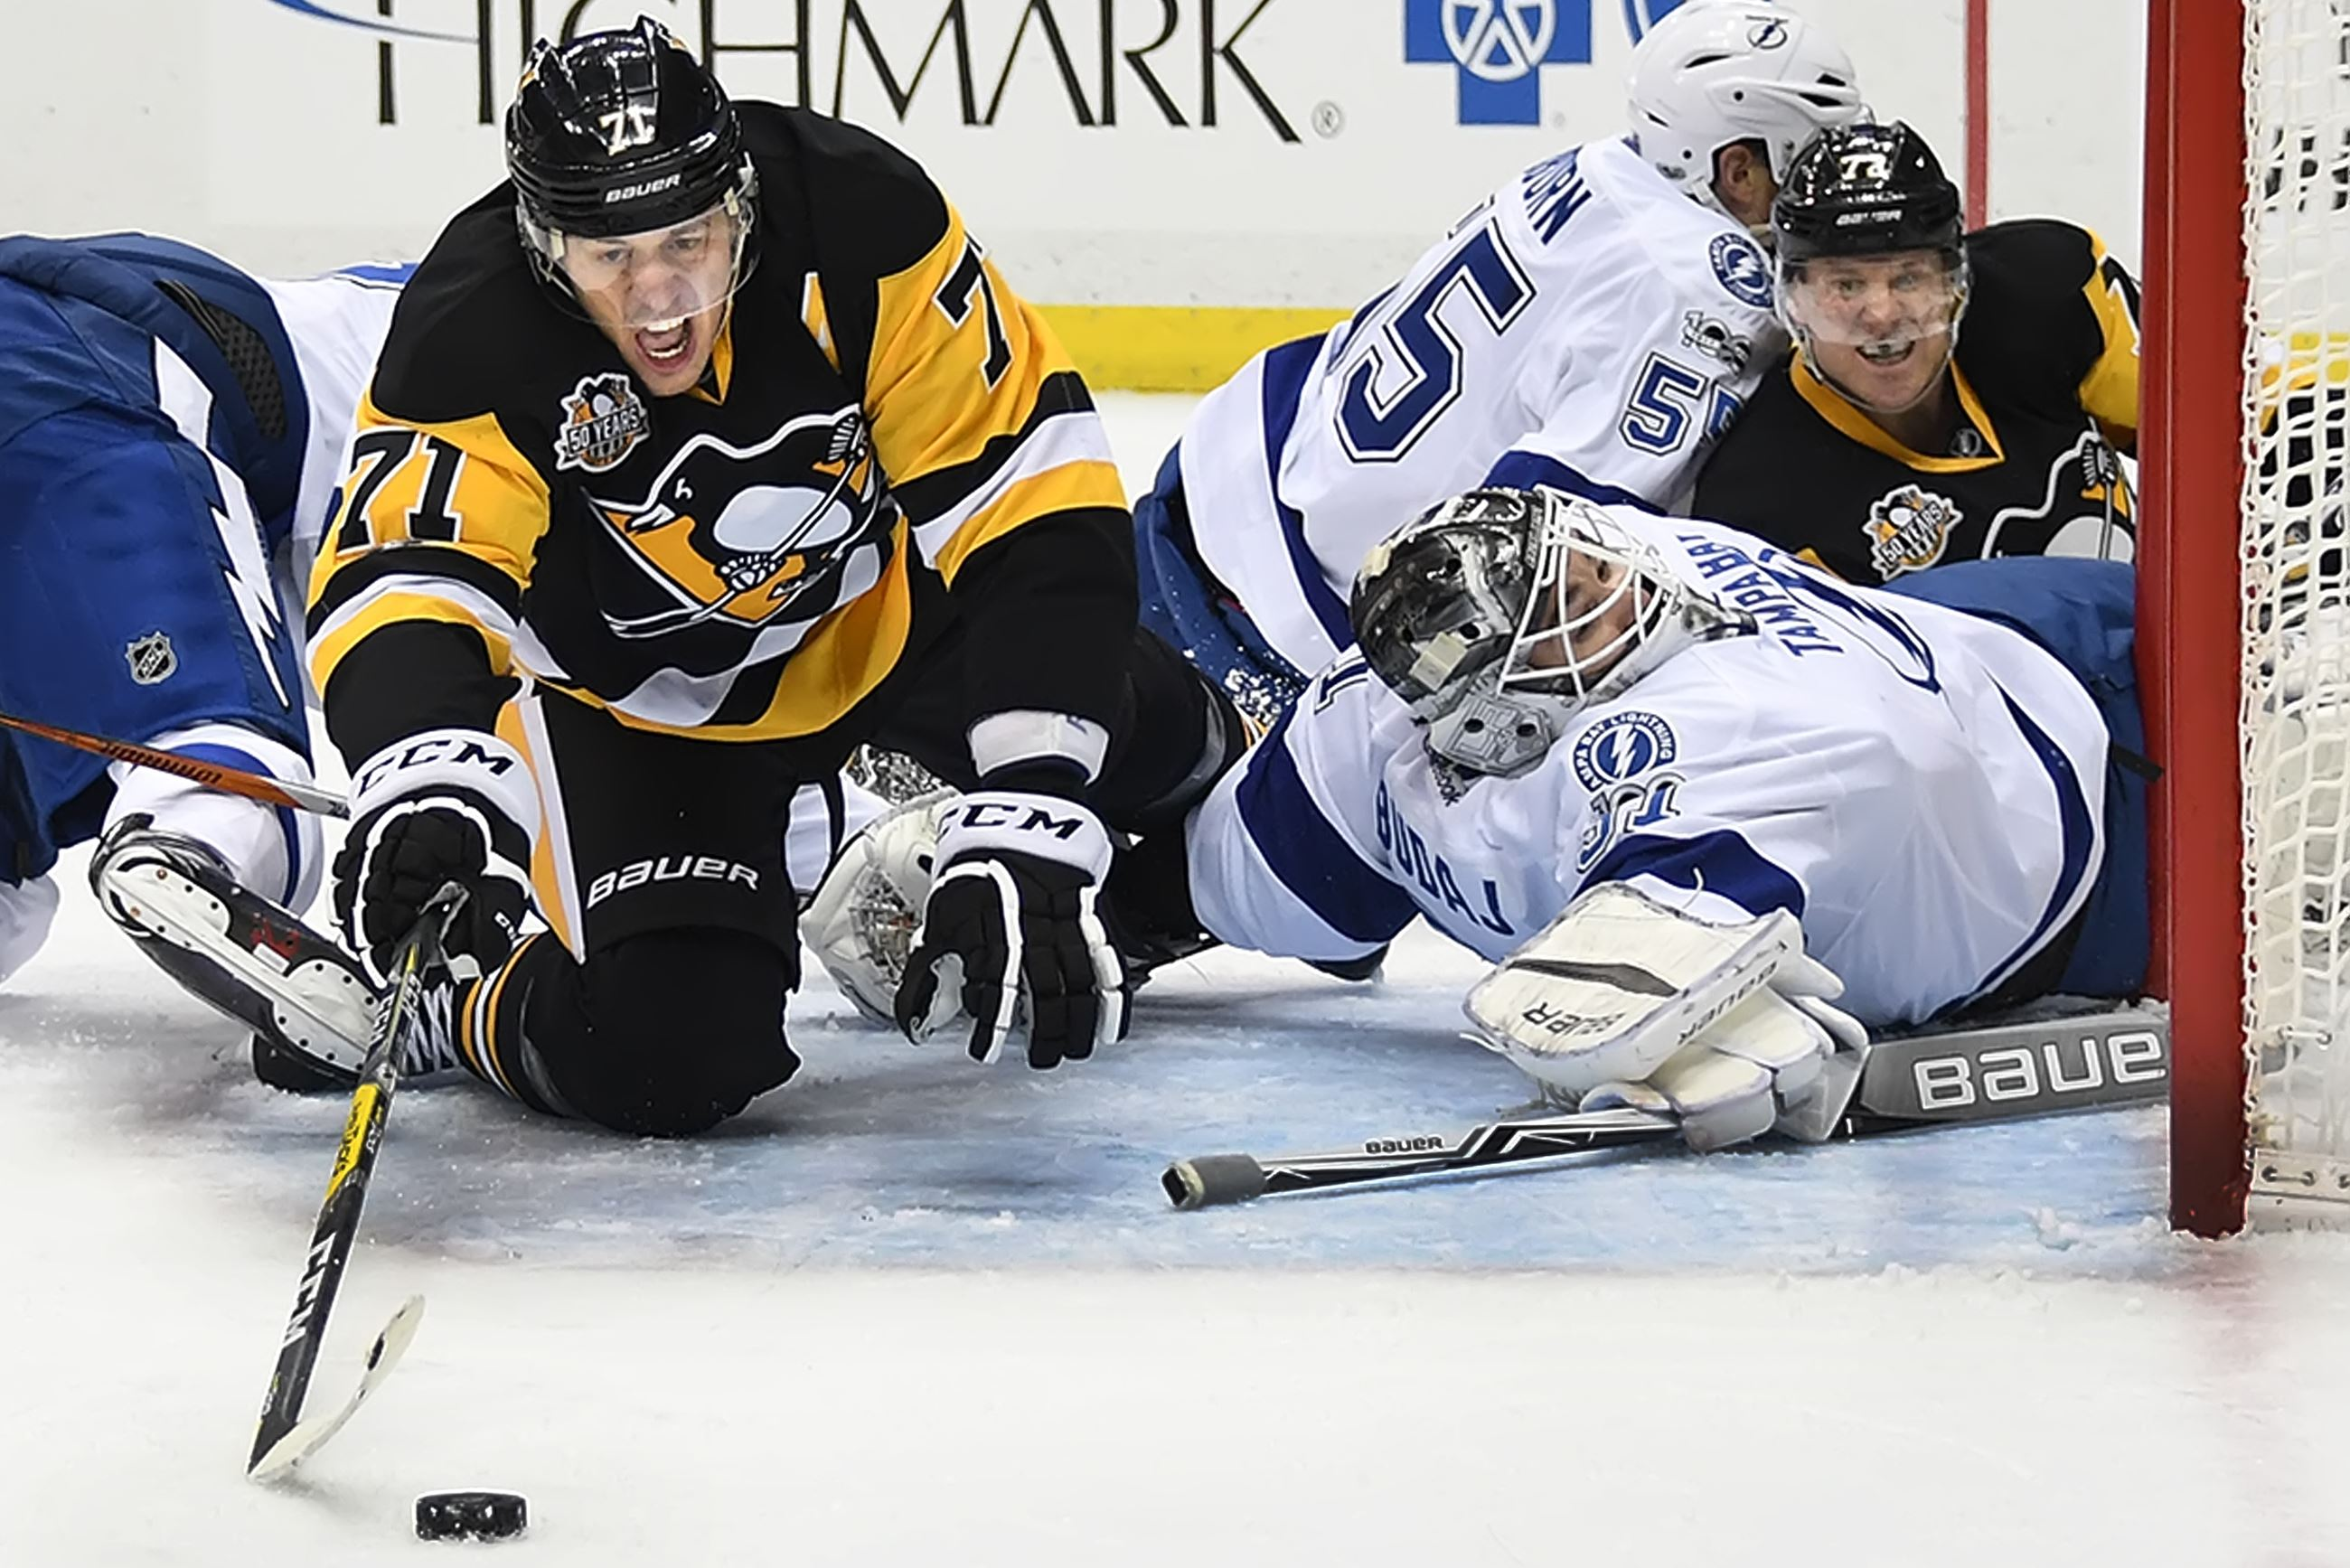 Penguins Ron Hainsey sidelined with upper-body injury